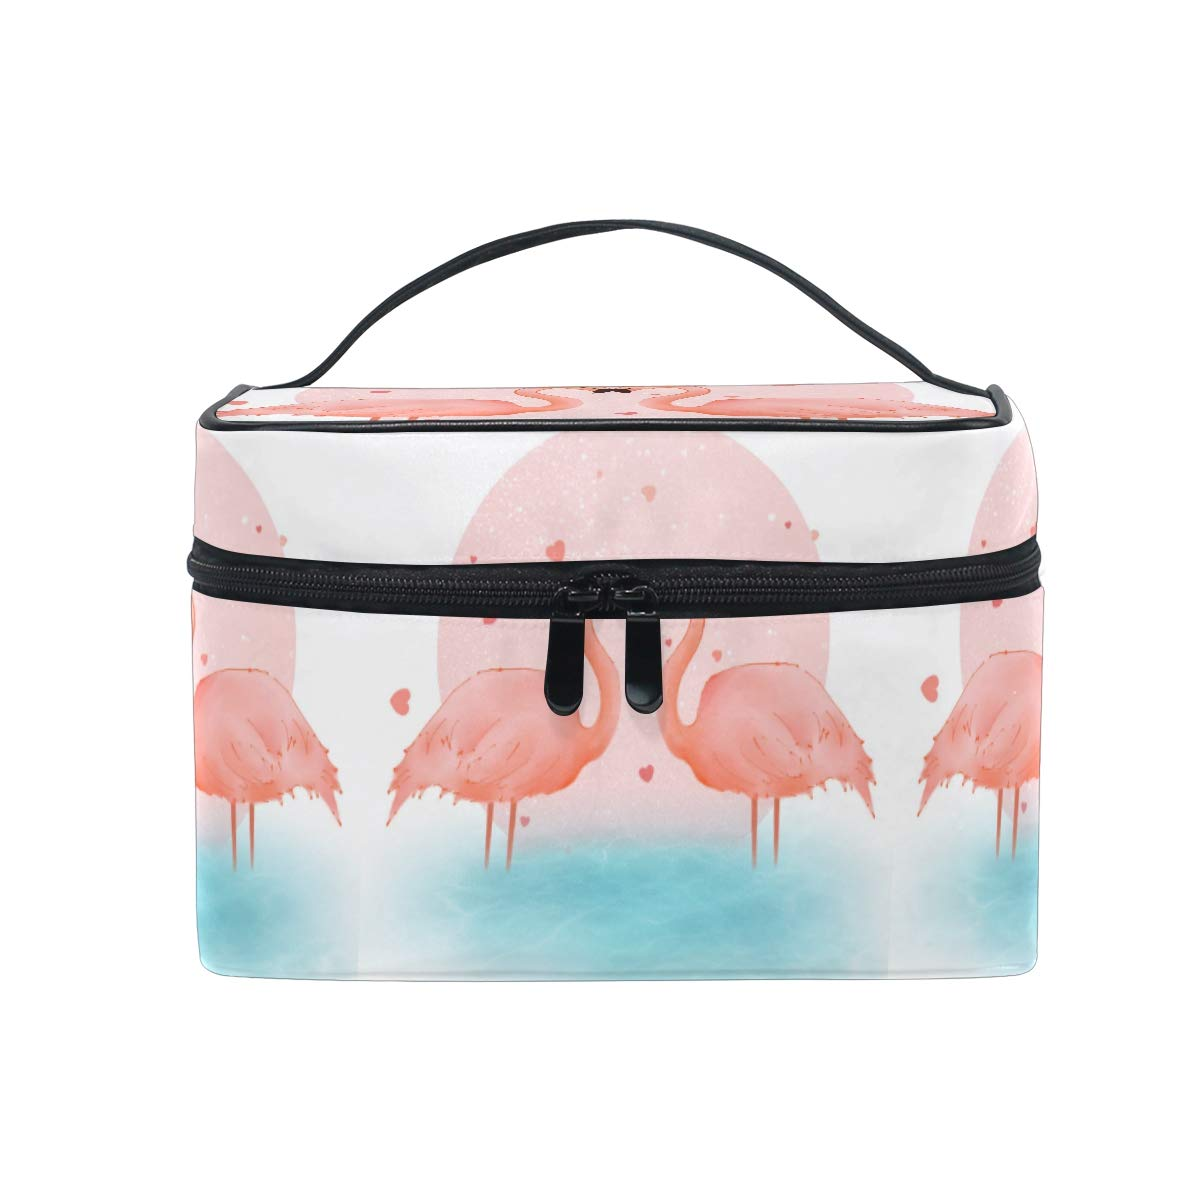 Makeup Bag Pink Flamingos Valentine's Travel Cosmetic Bags Organizer Train Case Toiletry Make Up Pouch for Womens Girls